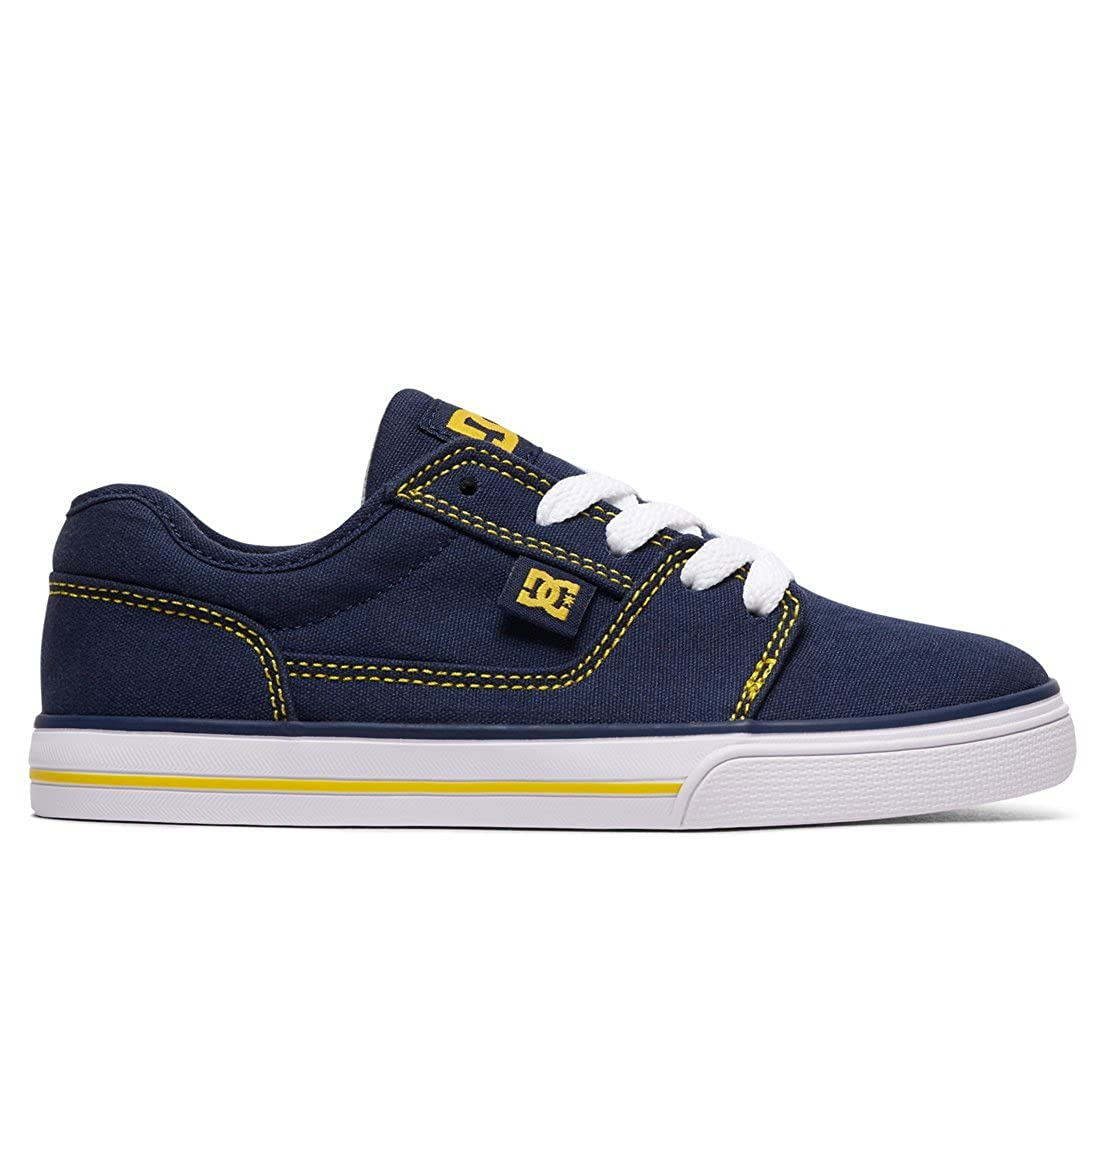 DC Tonik Tx B, Boys' Sneakers DC Shoes Boys' Sneakers ADBS300271